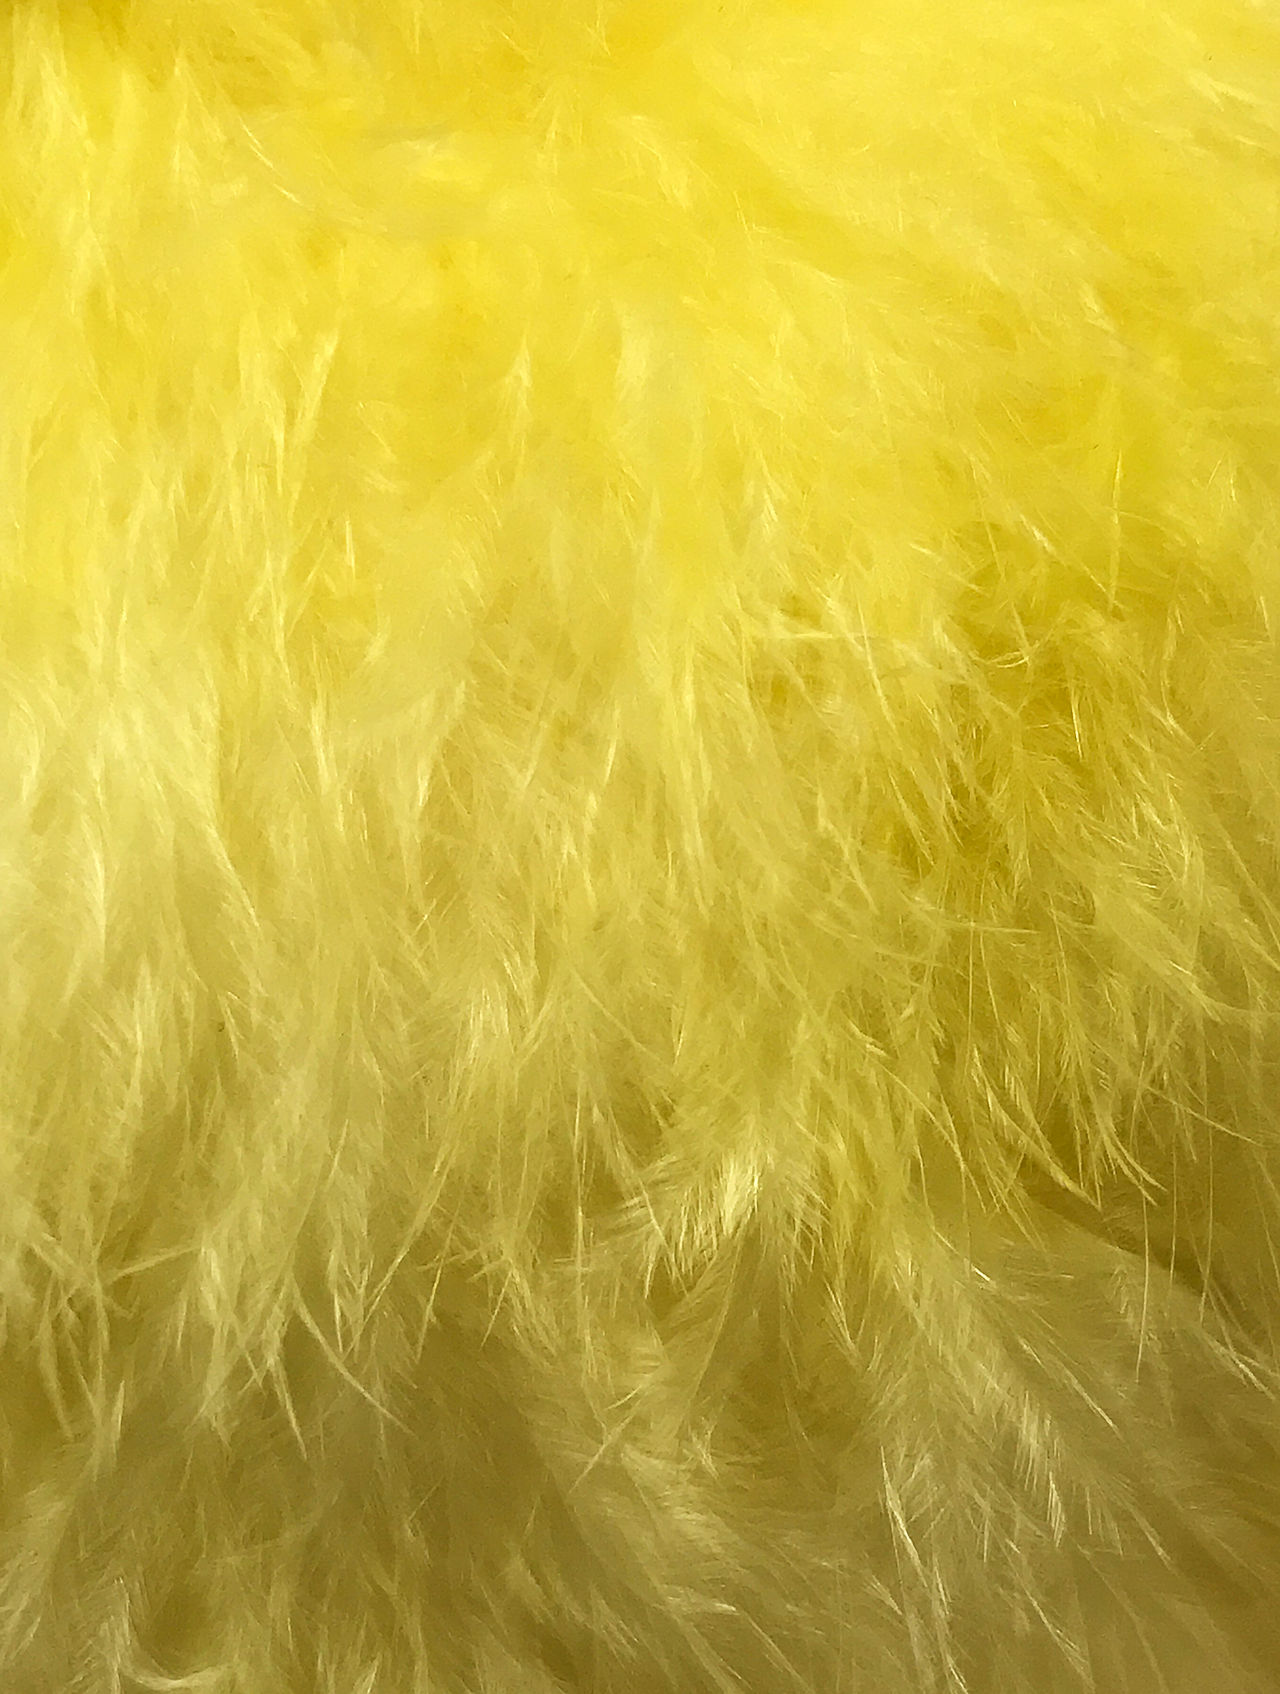 feathers photographed as texture and background Abstract Background Cloth Color Creative Decorative Fabric Feather  Feathers Fiber Fluffy Luxury Natural Pattern Soft Textile Texture Winter